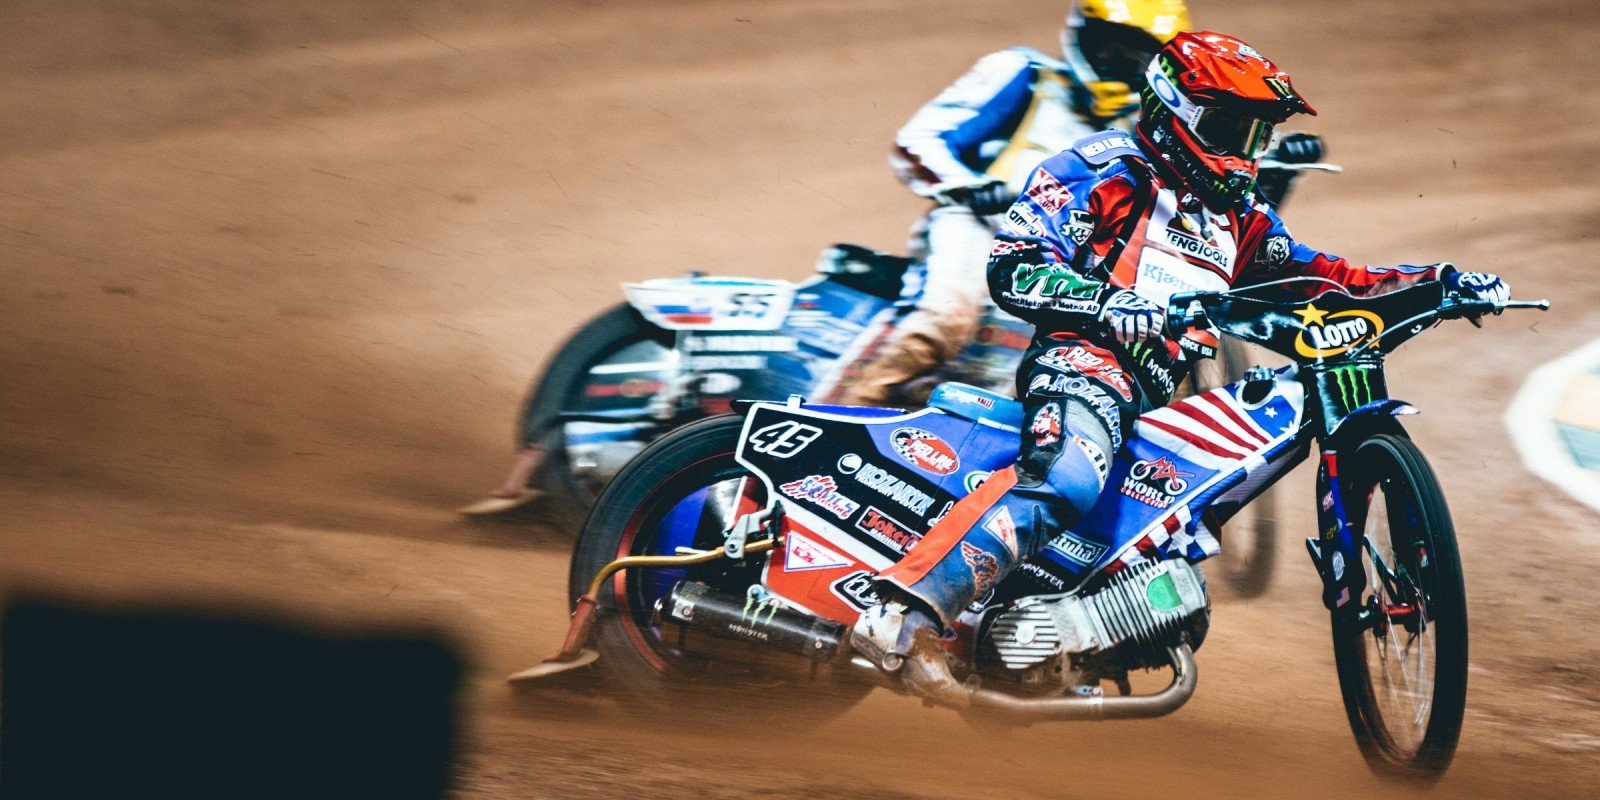 Images of Greg Hancock from the Warsaw SGP